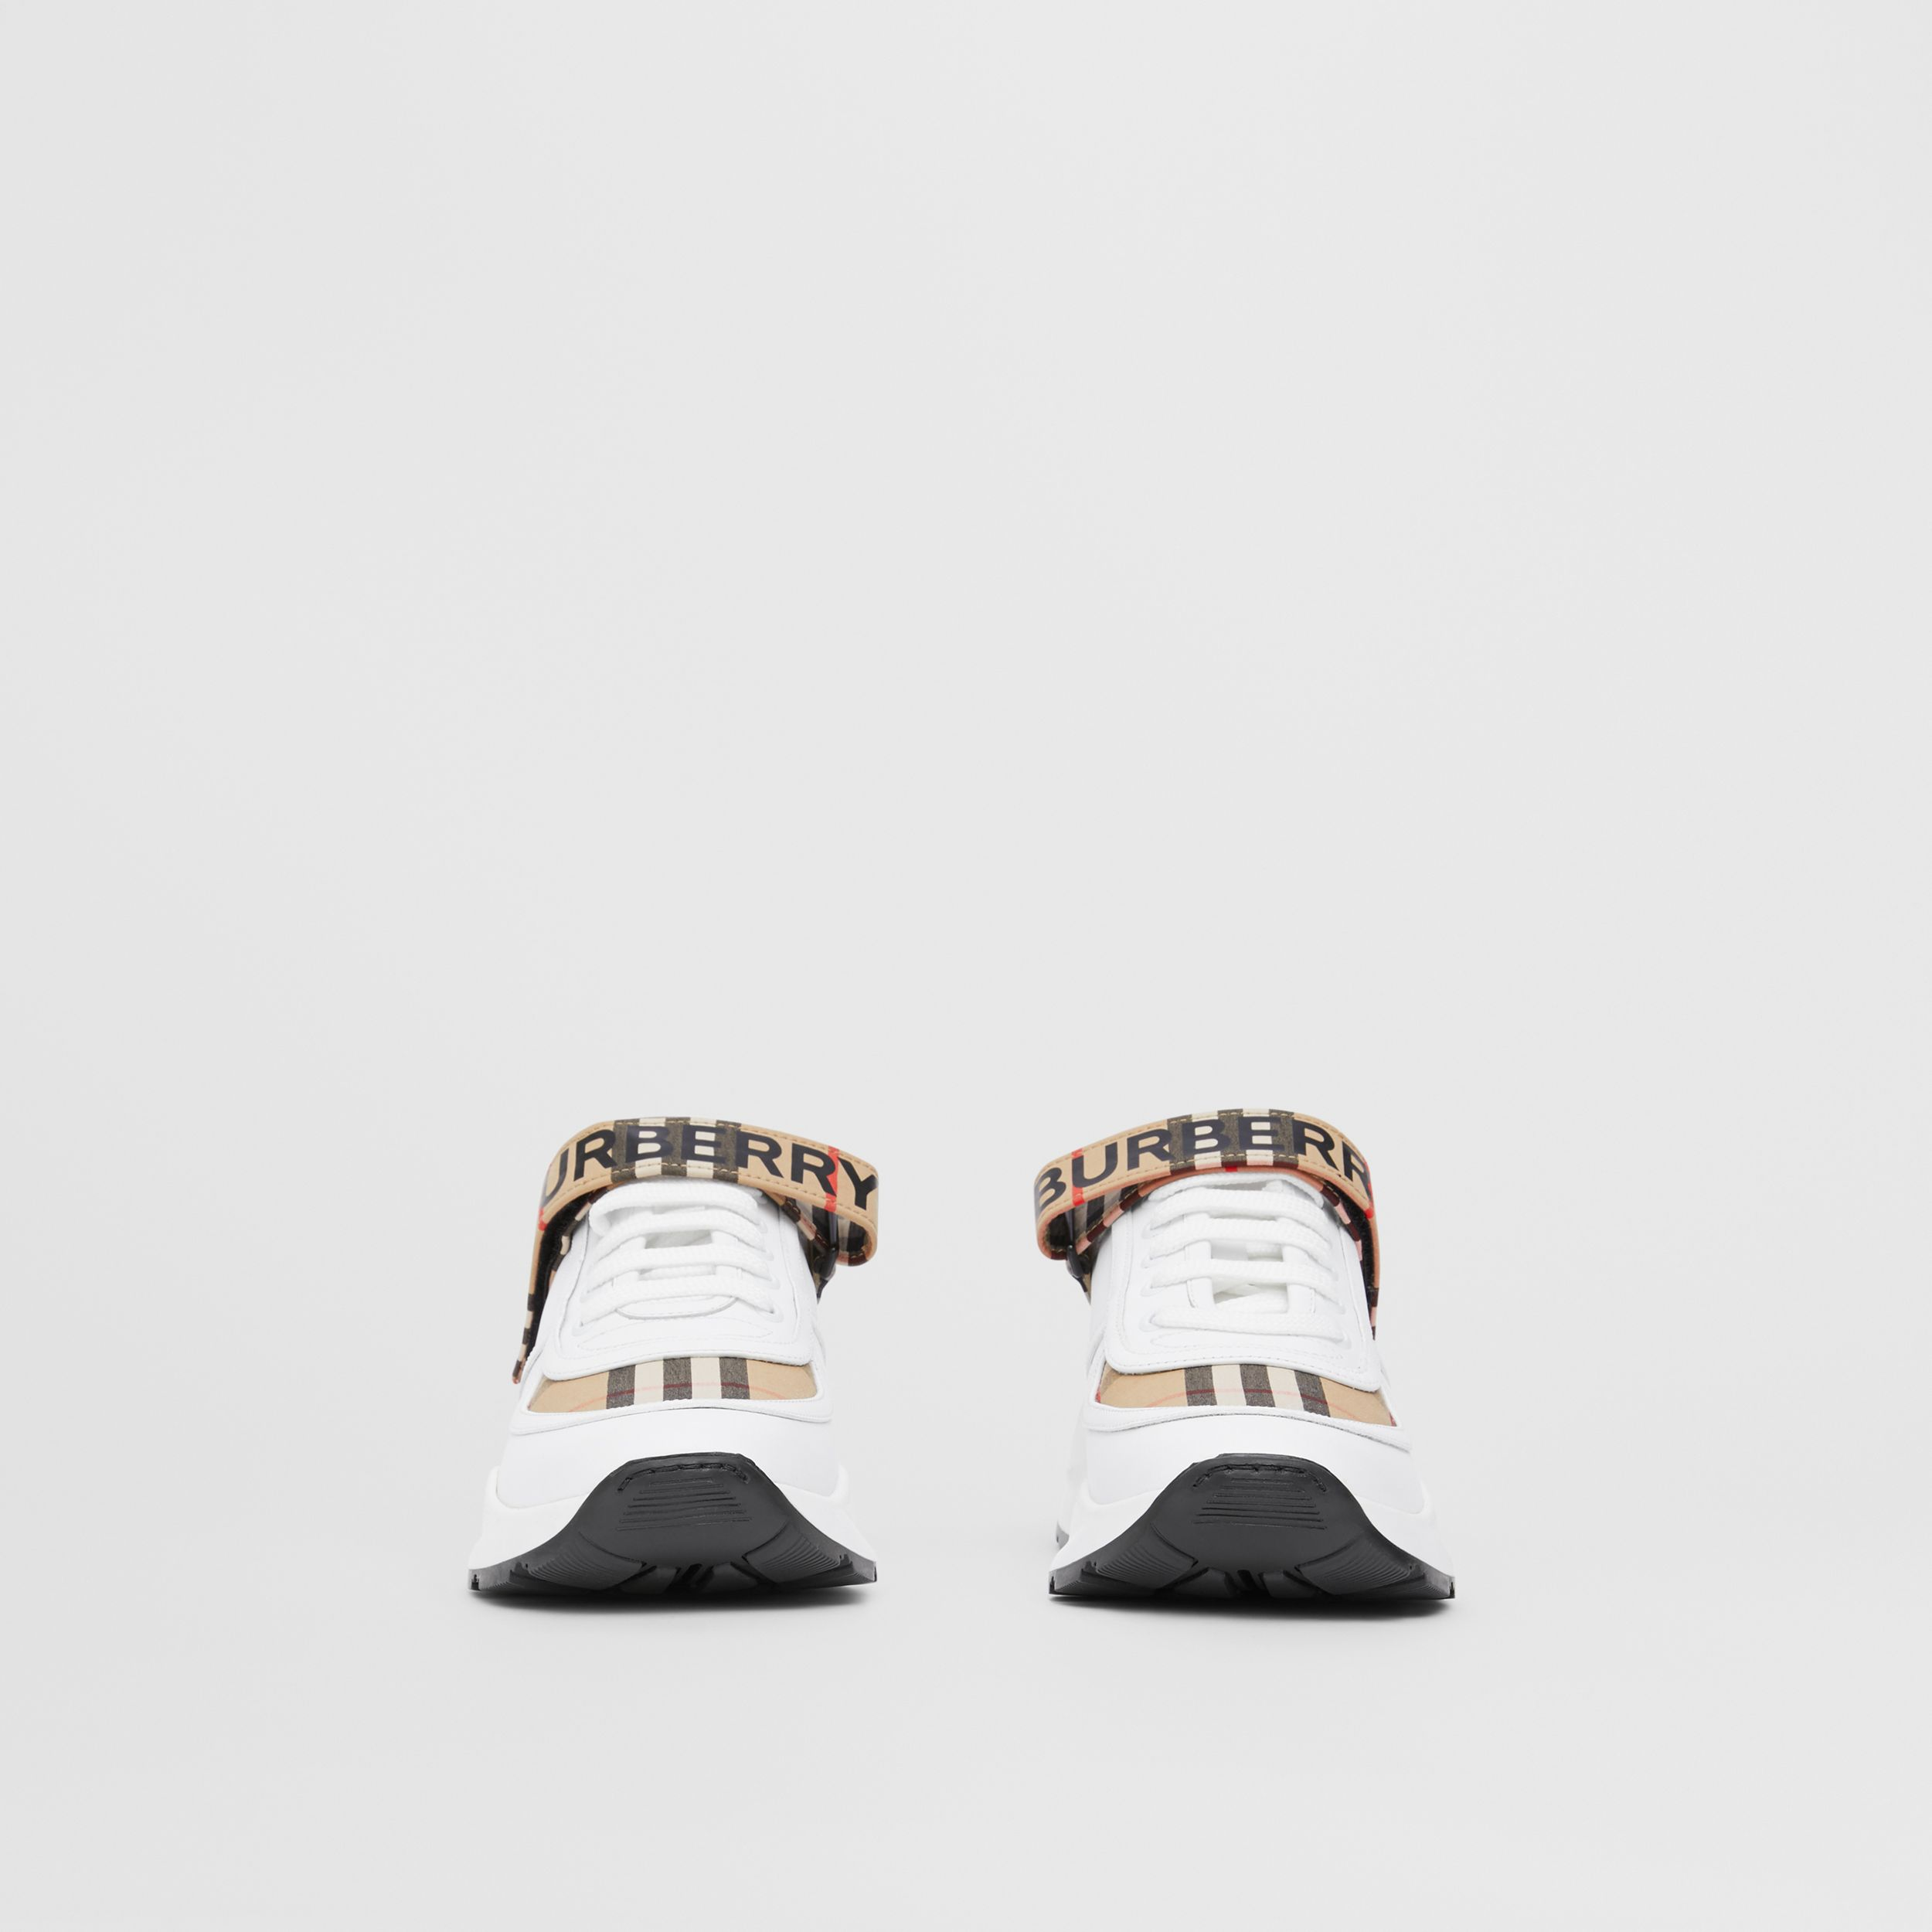 Logo Print Vintage Check and Leather Sneakers in Archive Beige - Women | Burberry United Kingdom - 4